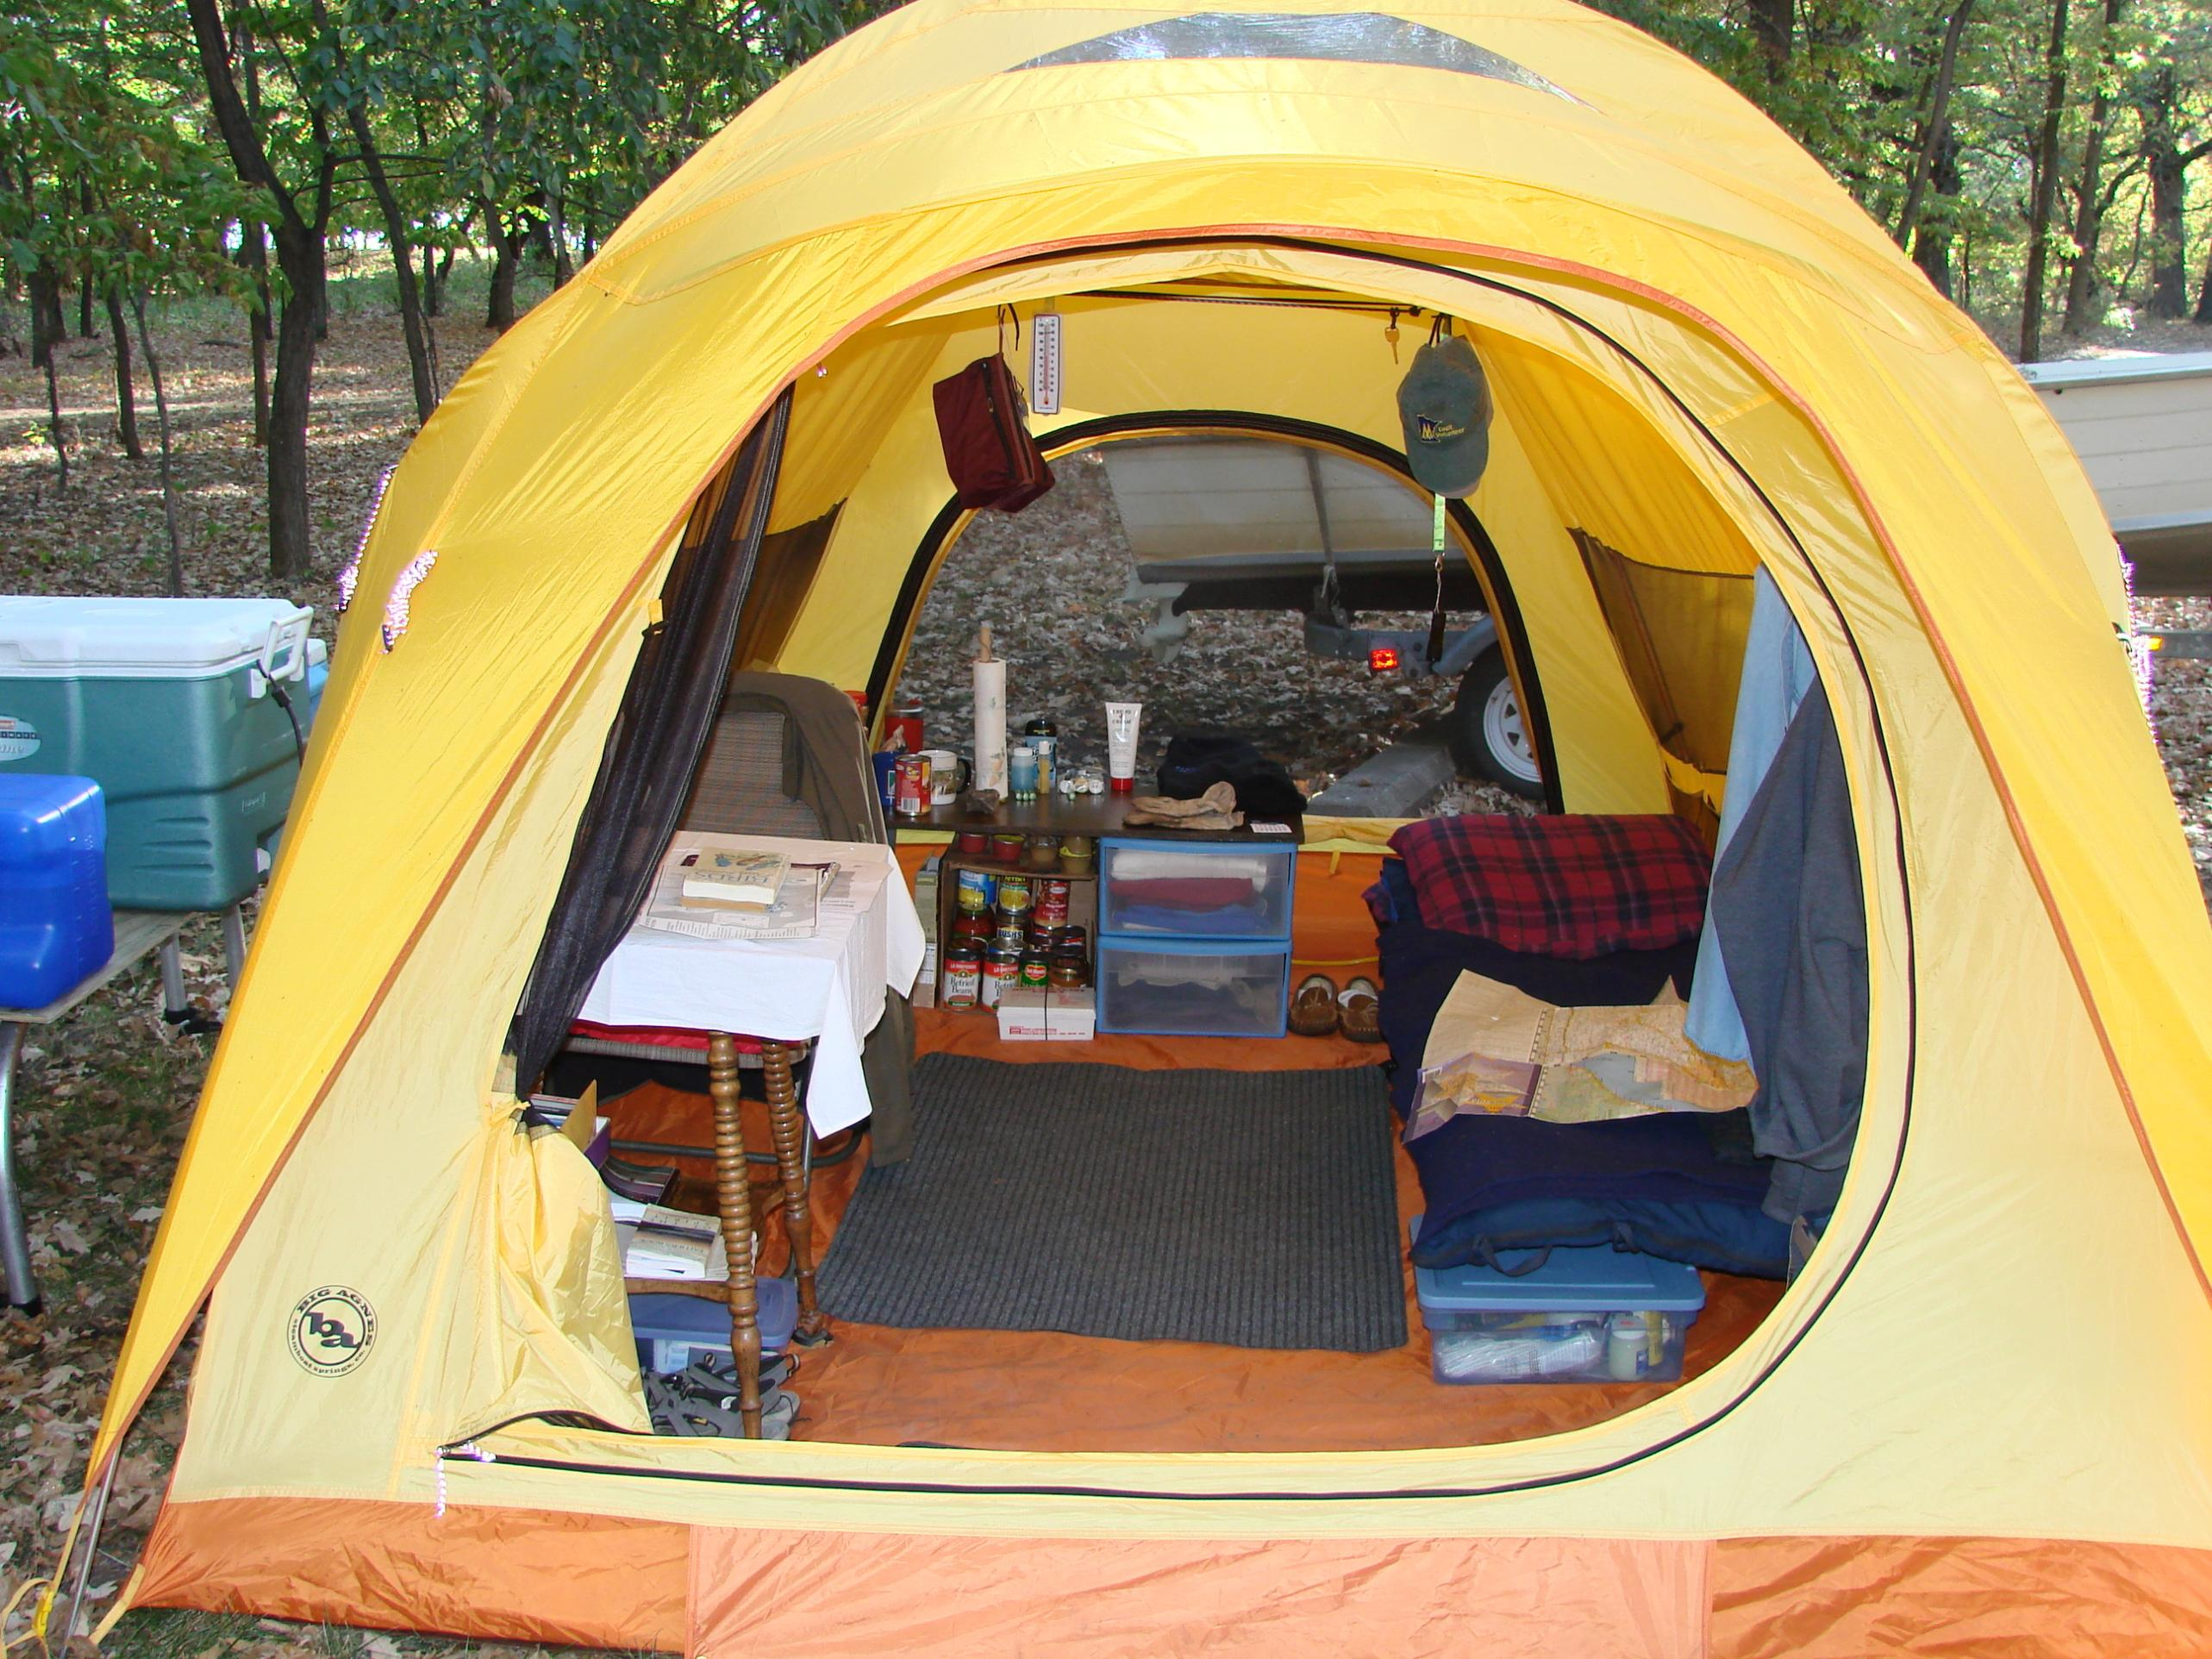 & BWCA Need a new car camping tent... Boundary Waters Gear Forum